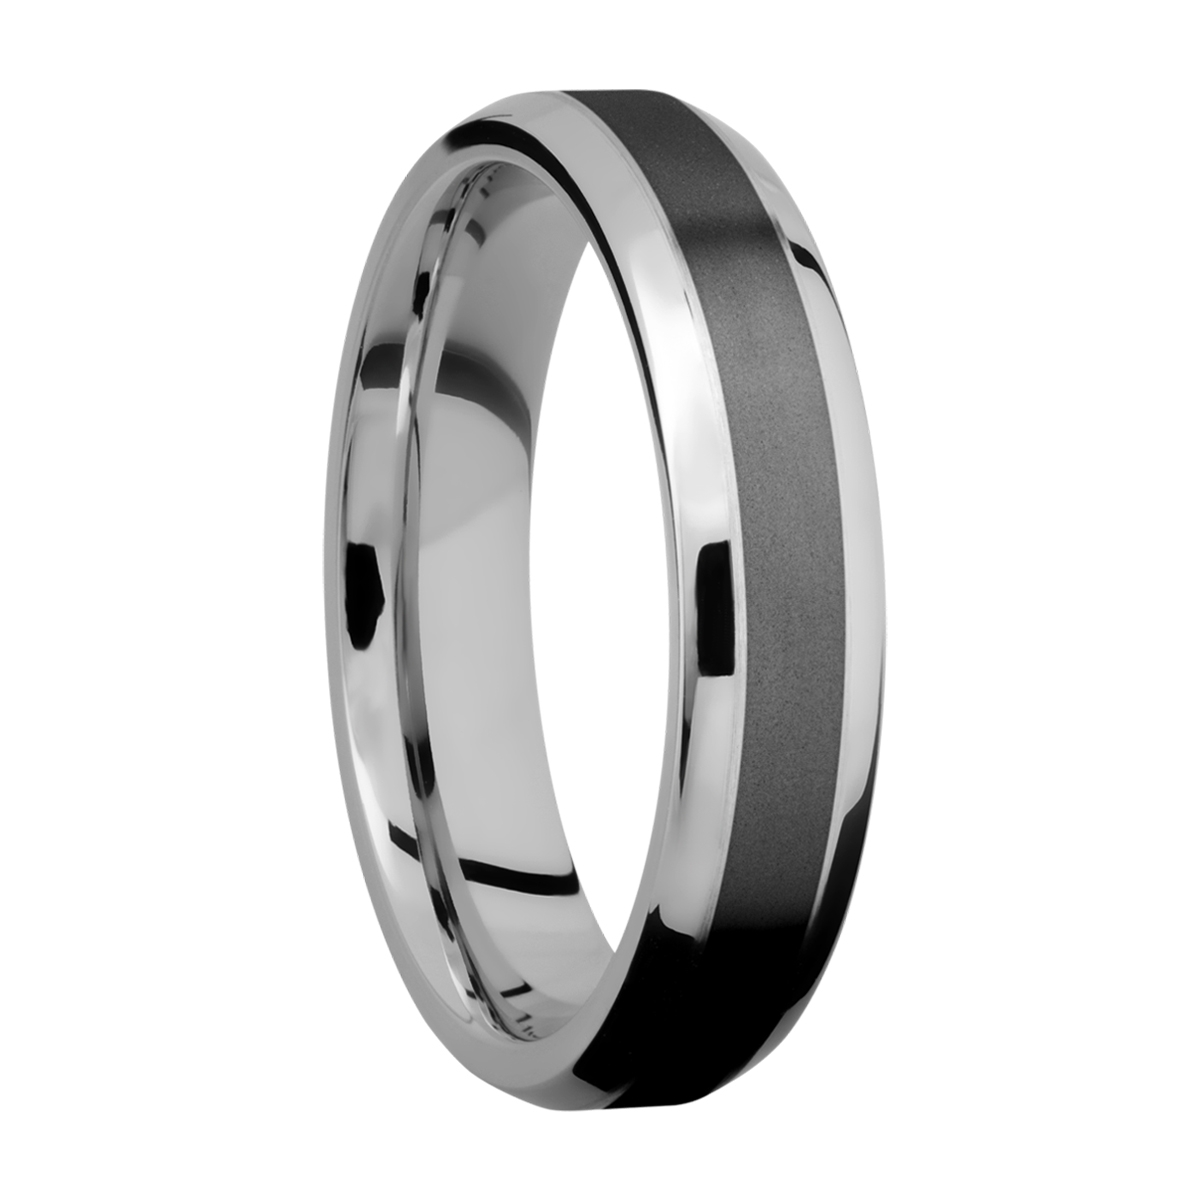 Lashbrook CCPF5B13(NS)/ZIRCONIUM Cobalt Chrome Wedding Ring or Band Alternative View 1